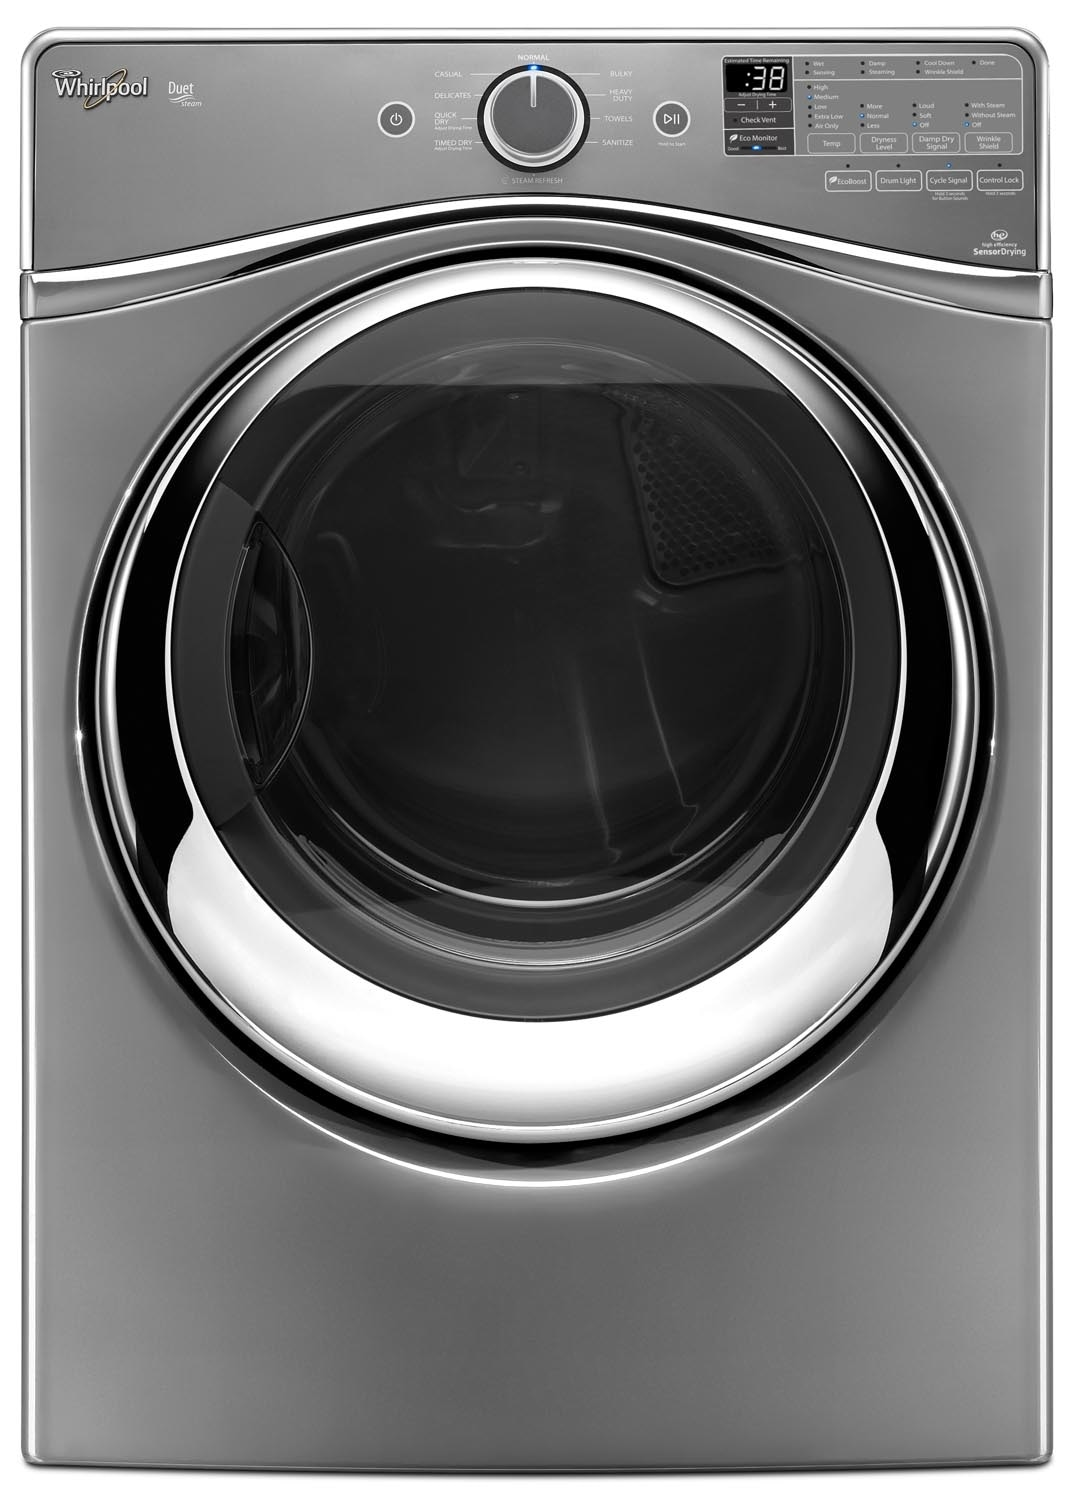 Whirlpool Chrome Shadow Gas Dryer (7.3 Cu. Ft.) - WGD95HEDC